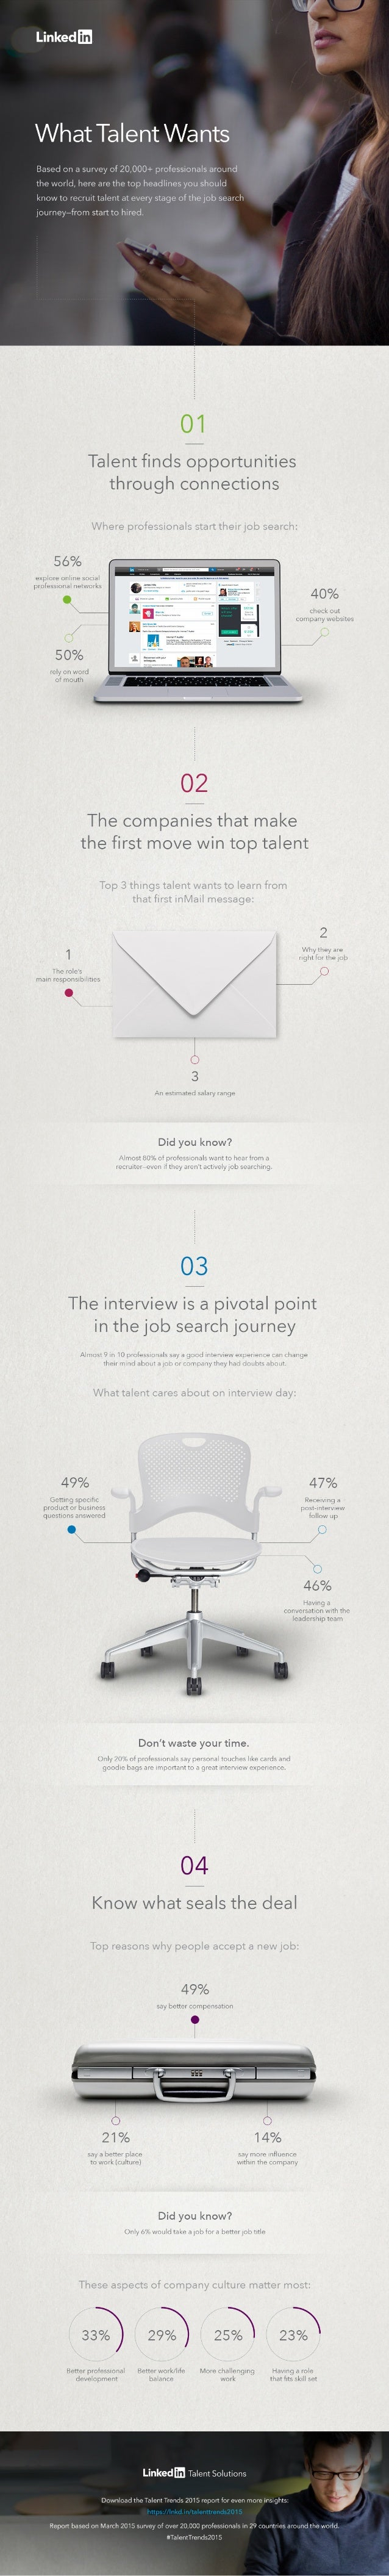 Linked   What Talent Wants  Based on a survey of 20,000+ professionals around the world,  here are the top headlines you s...